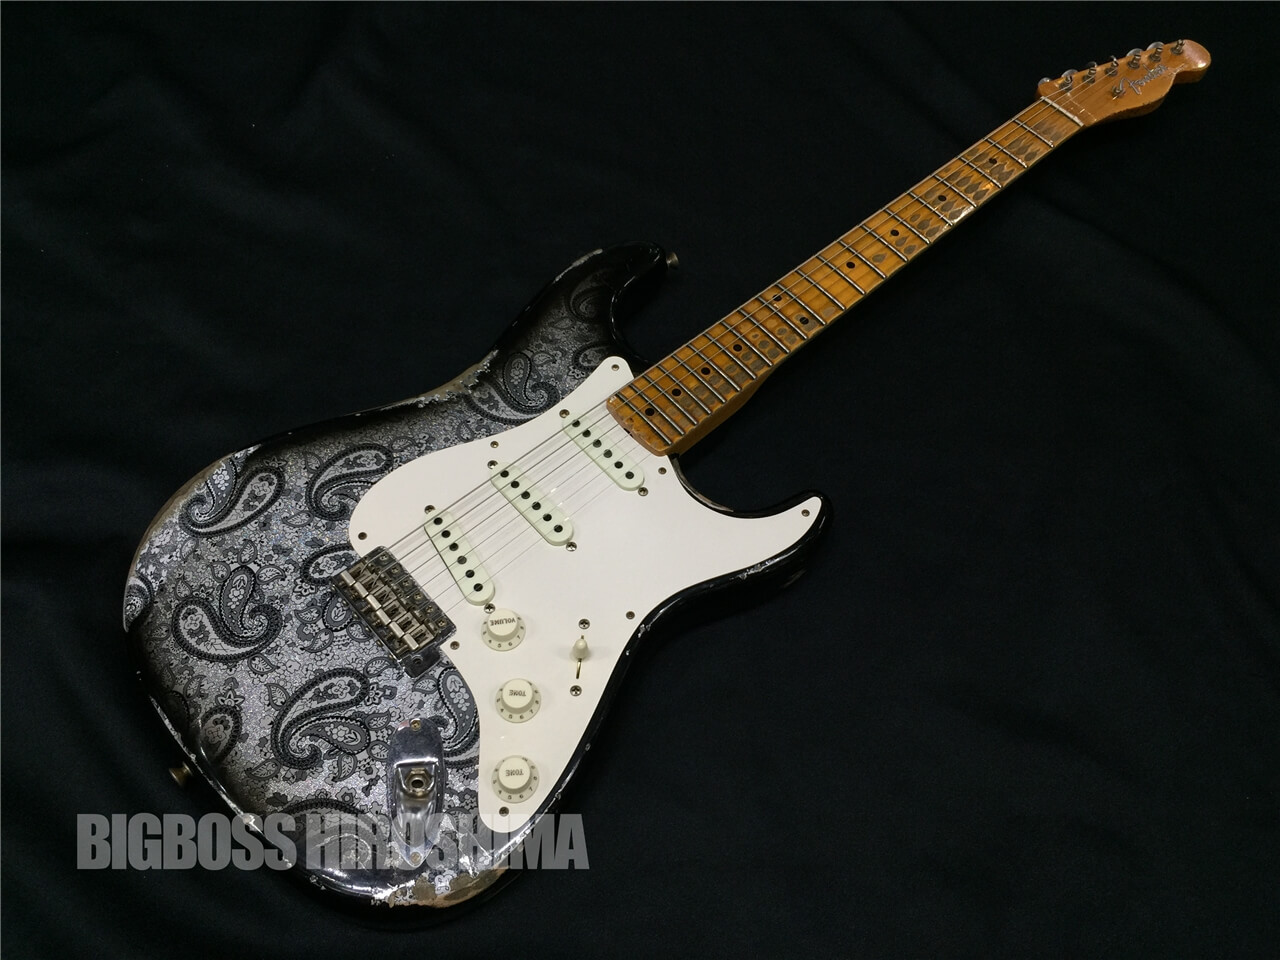 【中古品】Fender USA CUSTOM SHOP TBC Limited PAISLEY MISCHIEF MAKER Heavy Relic 広島店